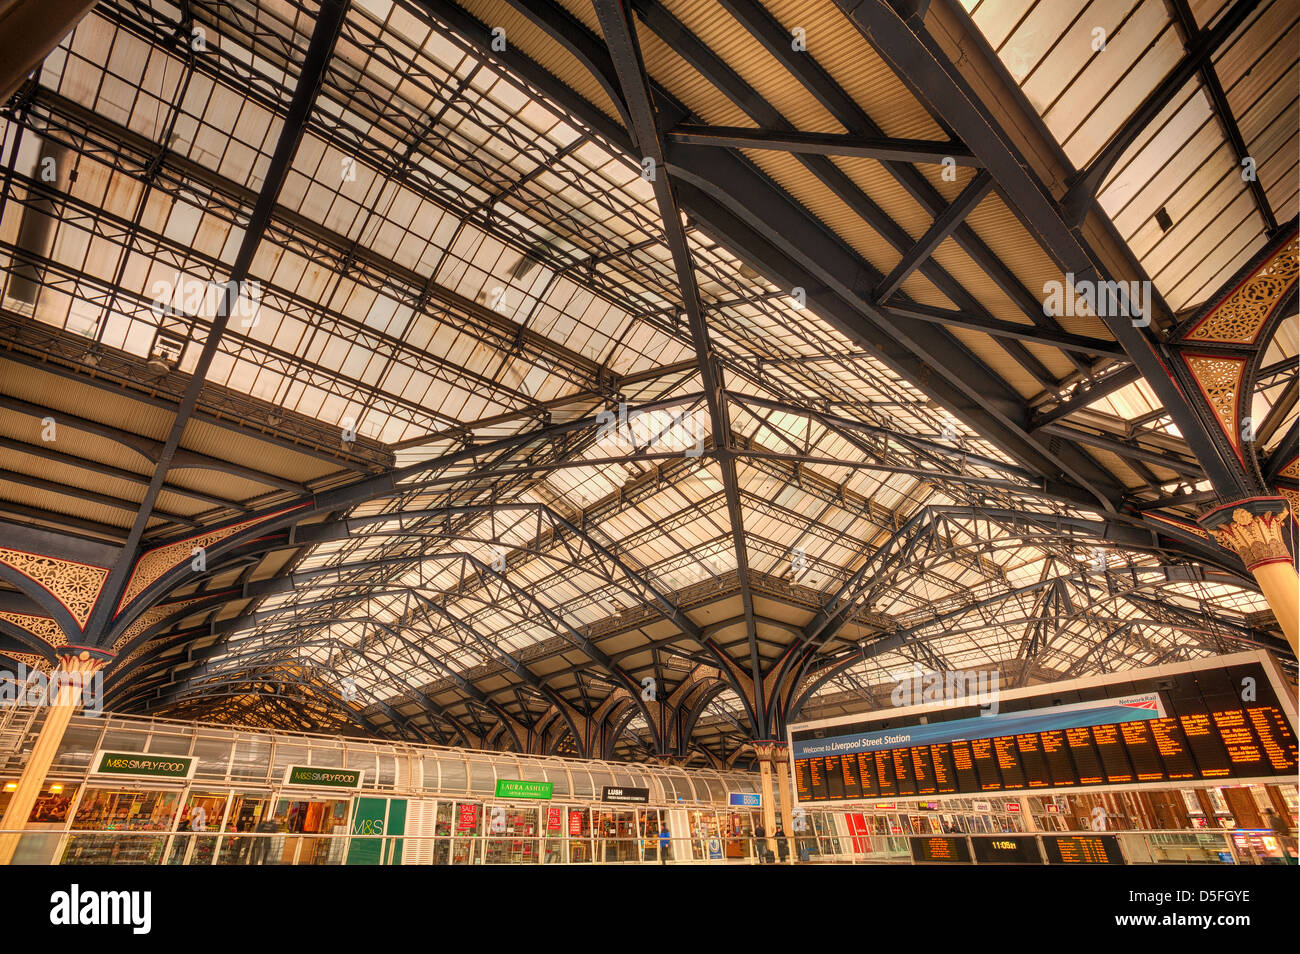 Intricate cast iron glazed Victorian engineering and detail of roof at Liverpool street station with concourse beneath - Stock Image